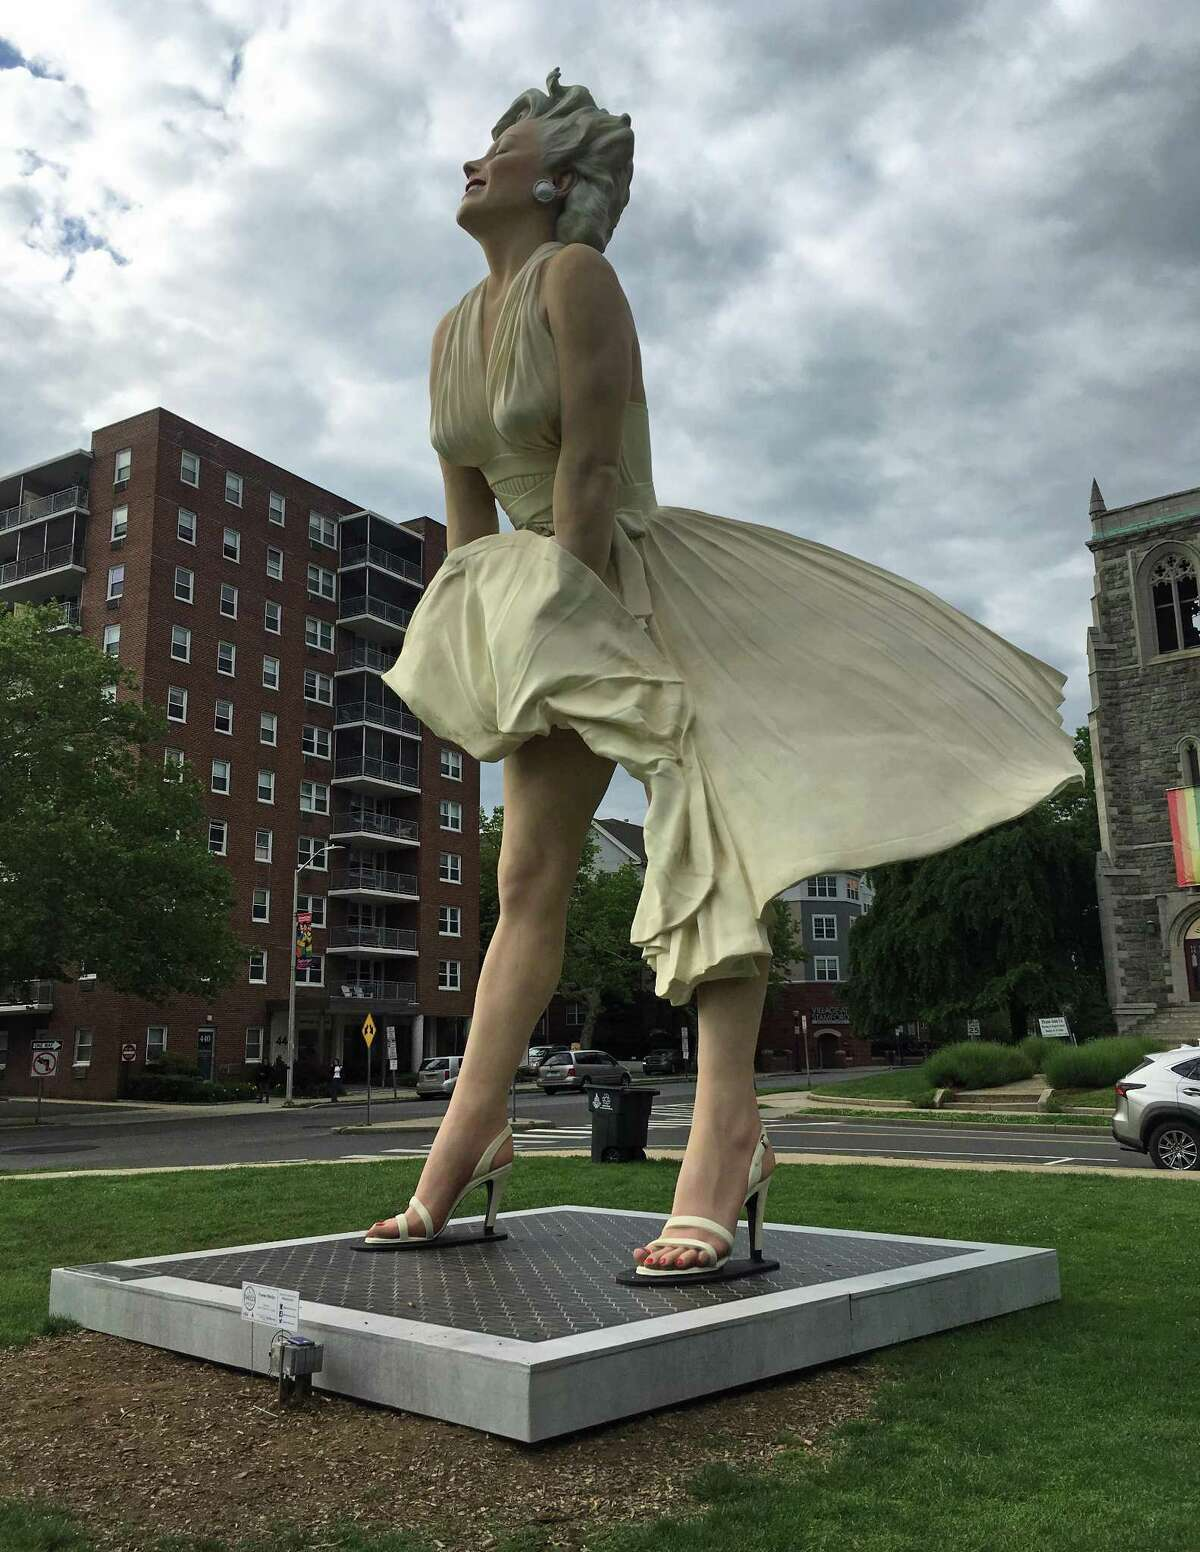 A monumental Marilyn Monroe is rooted at Latham Park in Stamford's, on June 6, 2018. She is in the city through Labor Day as part of a public art exhibition presented by Stamford Downtown Special Services District. She is made by sculptor Seward Johnson. She is made of stainless steel and aluminum.